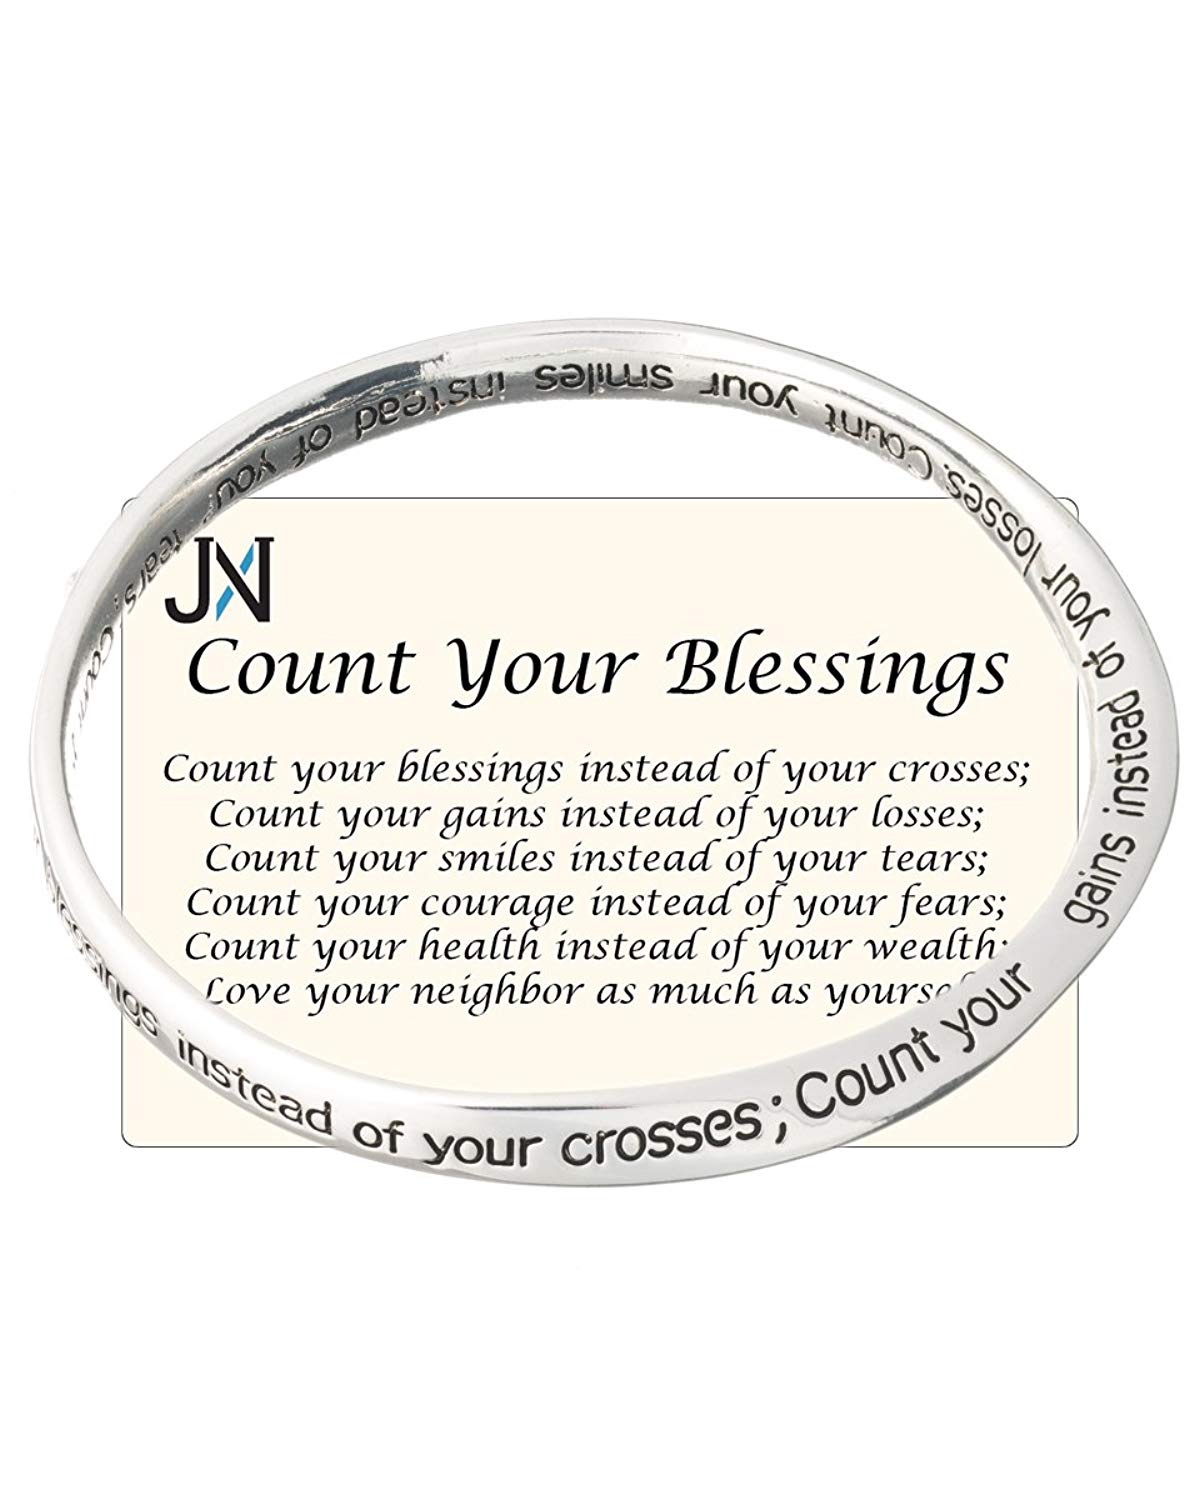 Count Your Blessings Inspirational Words Bangle Bracelet By Jewelry Nexus